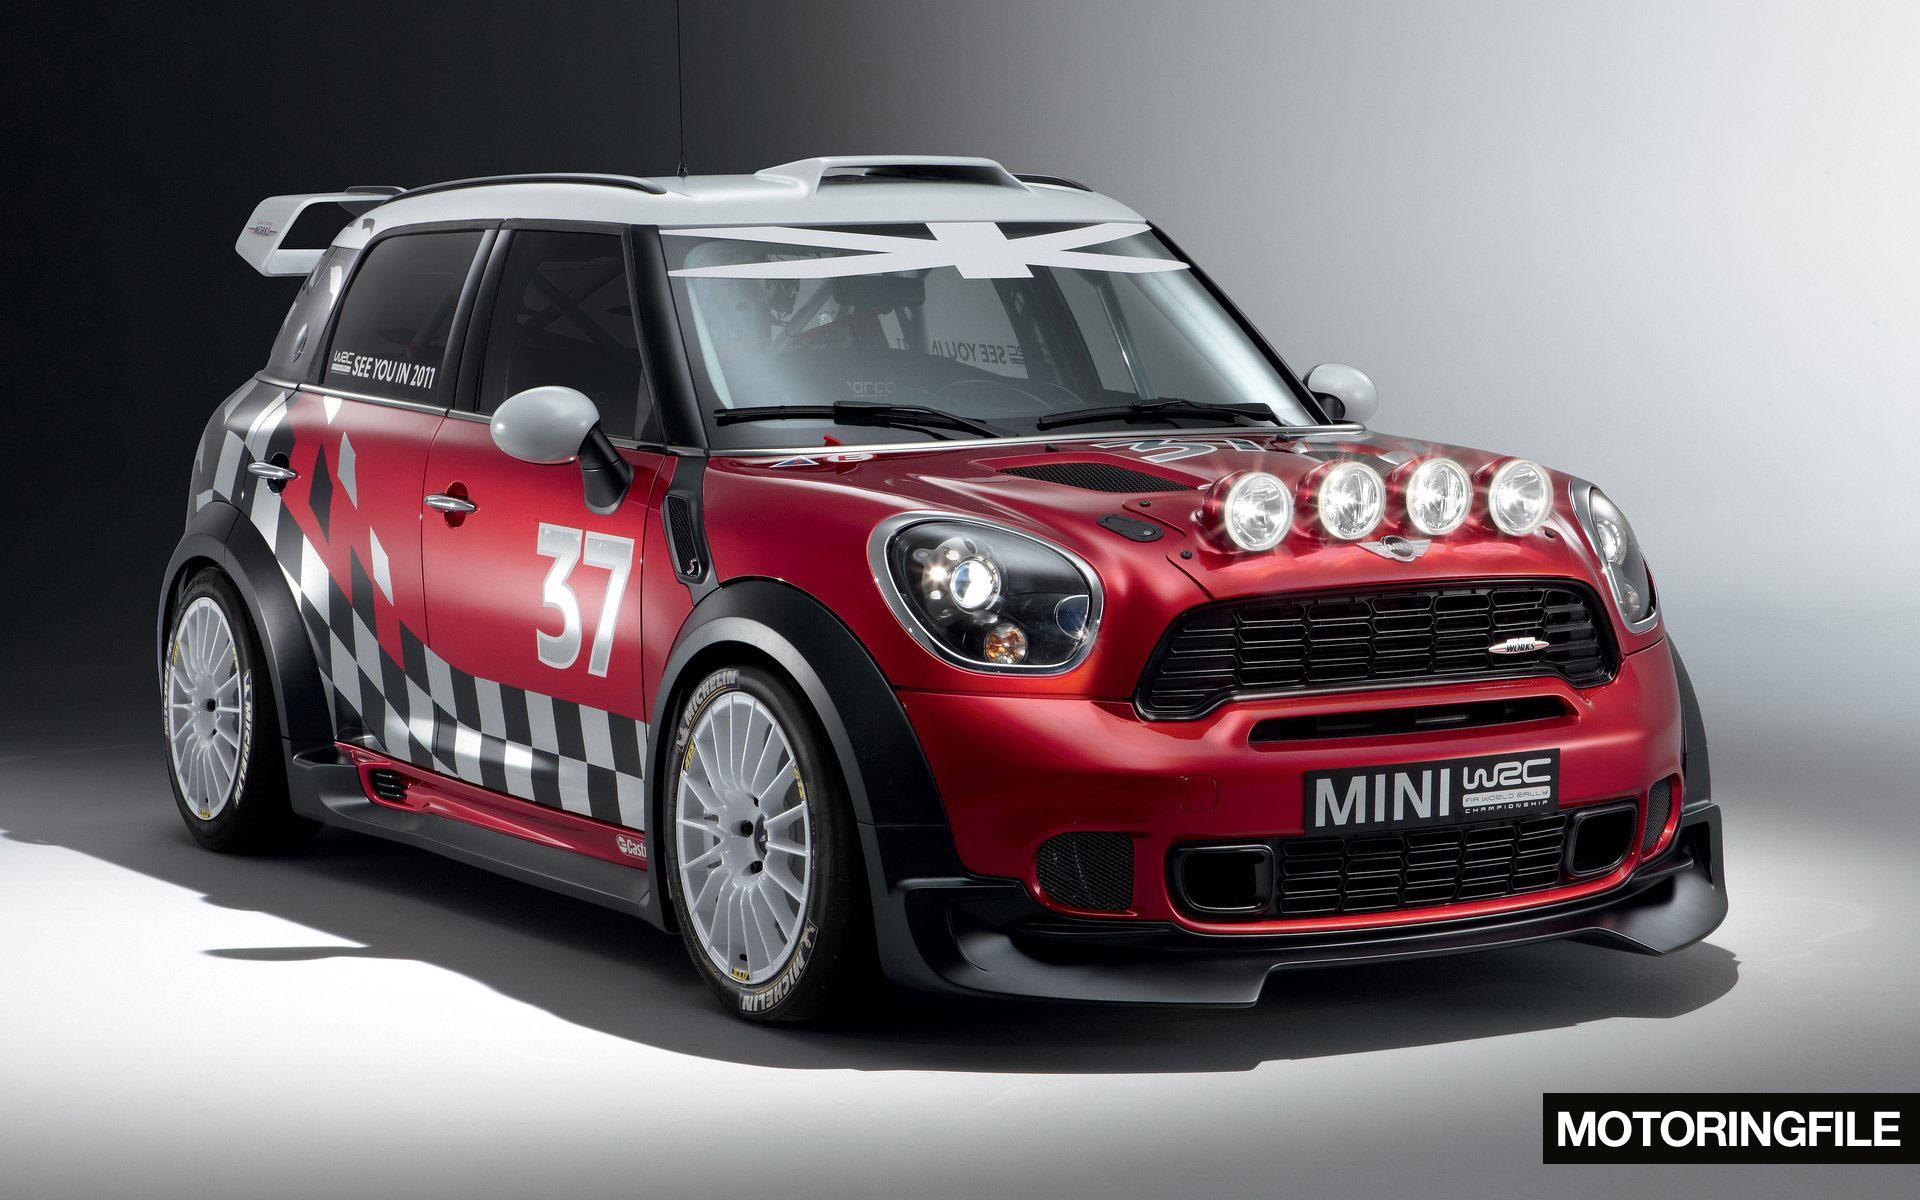 mini wrc countryman gallery full specification motoringfile. Black Bedroom Furniture Sets. Home Design Ideas